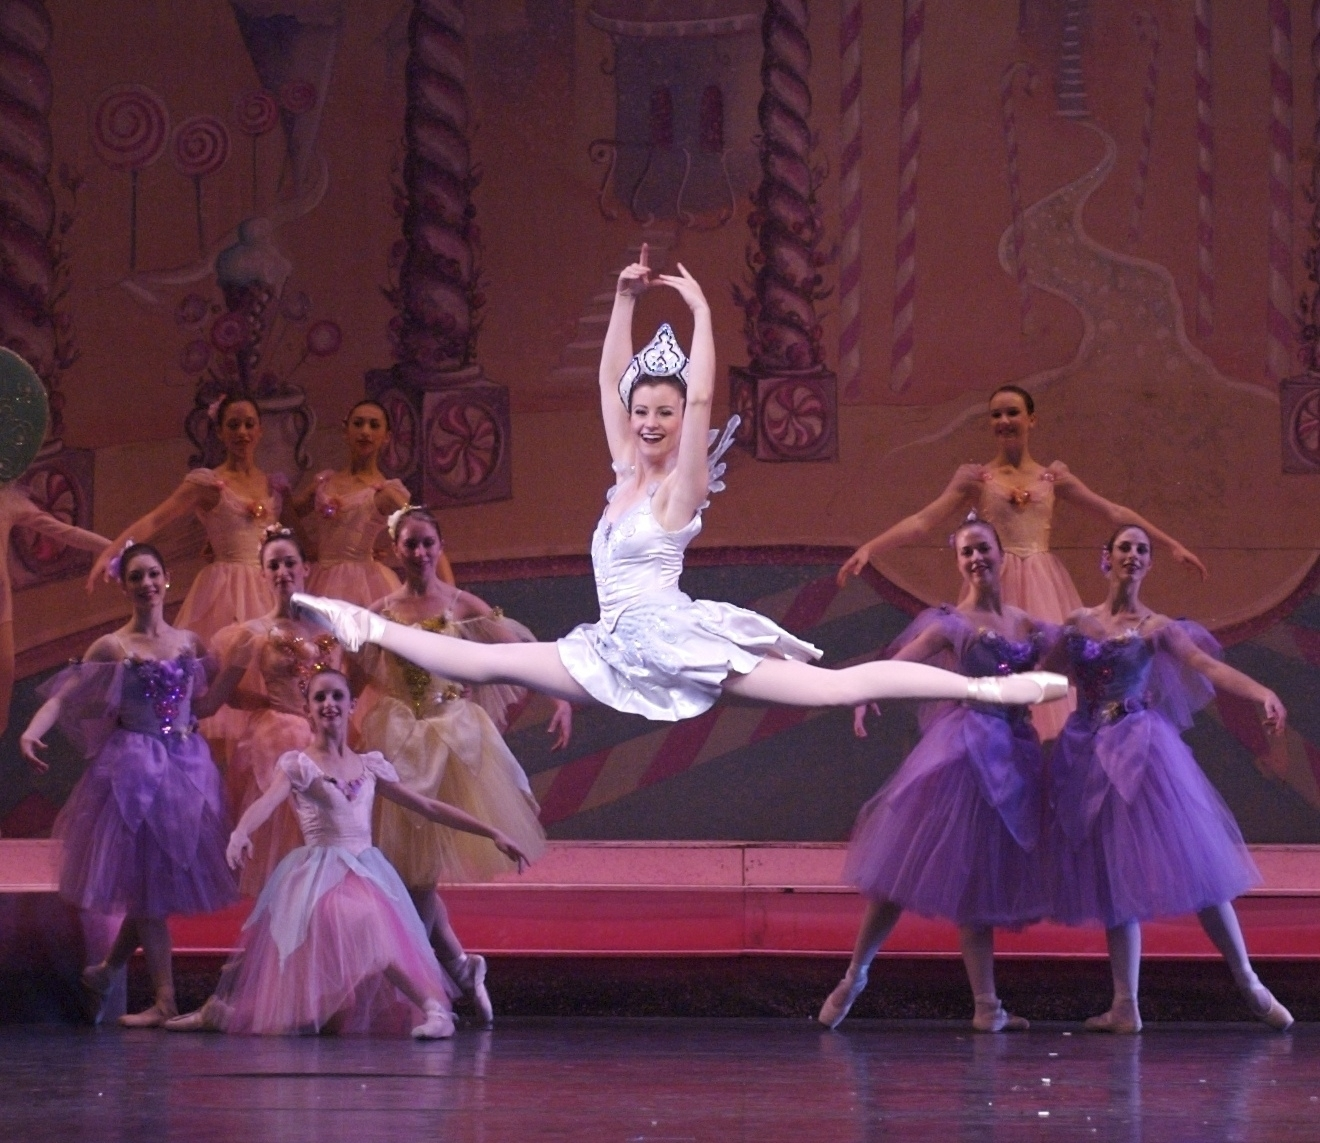 The Nutcracker - Top Things to Do in San Diego